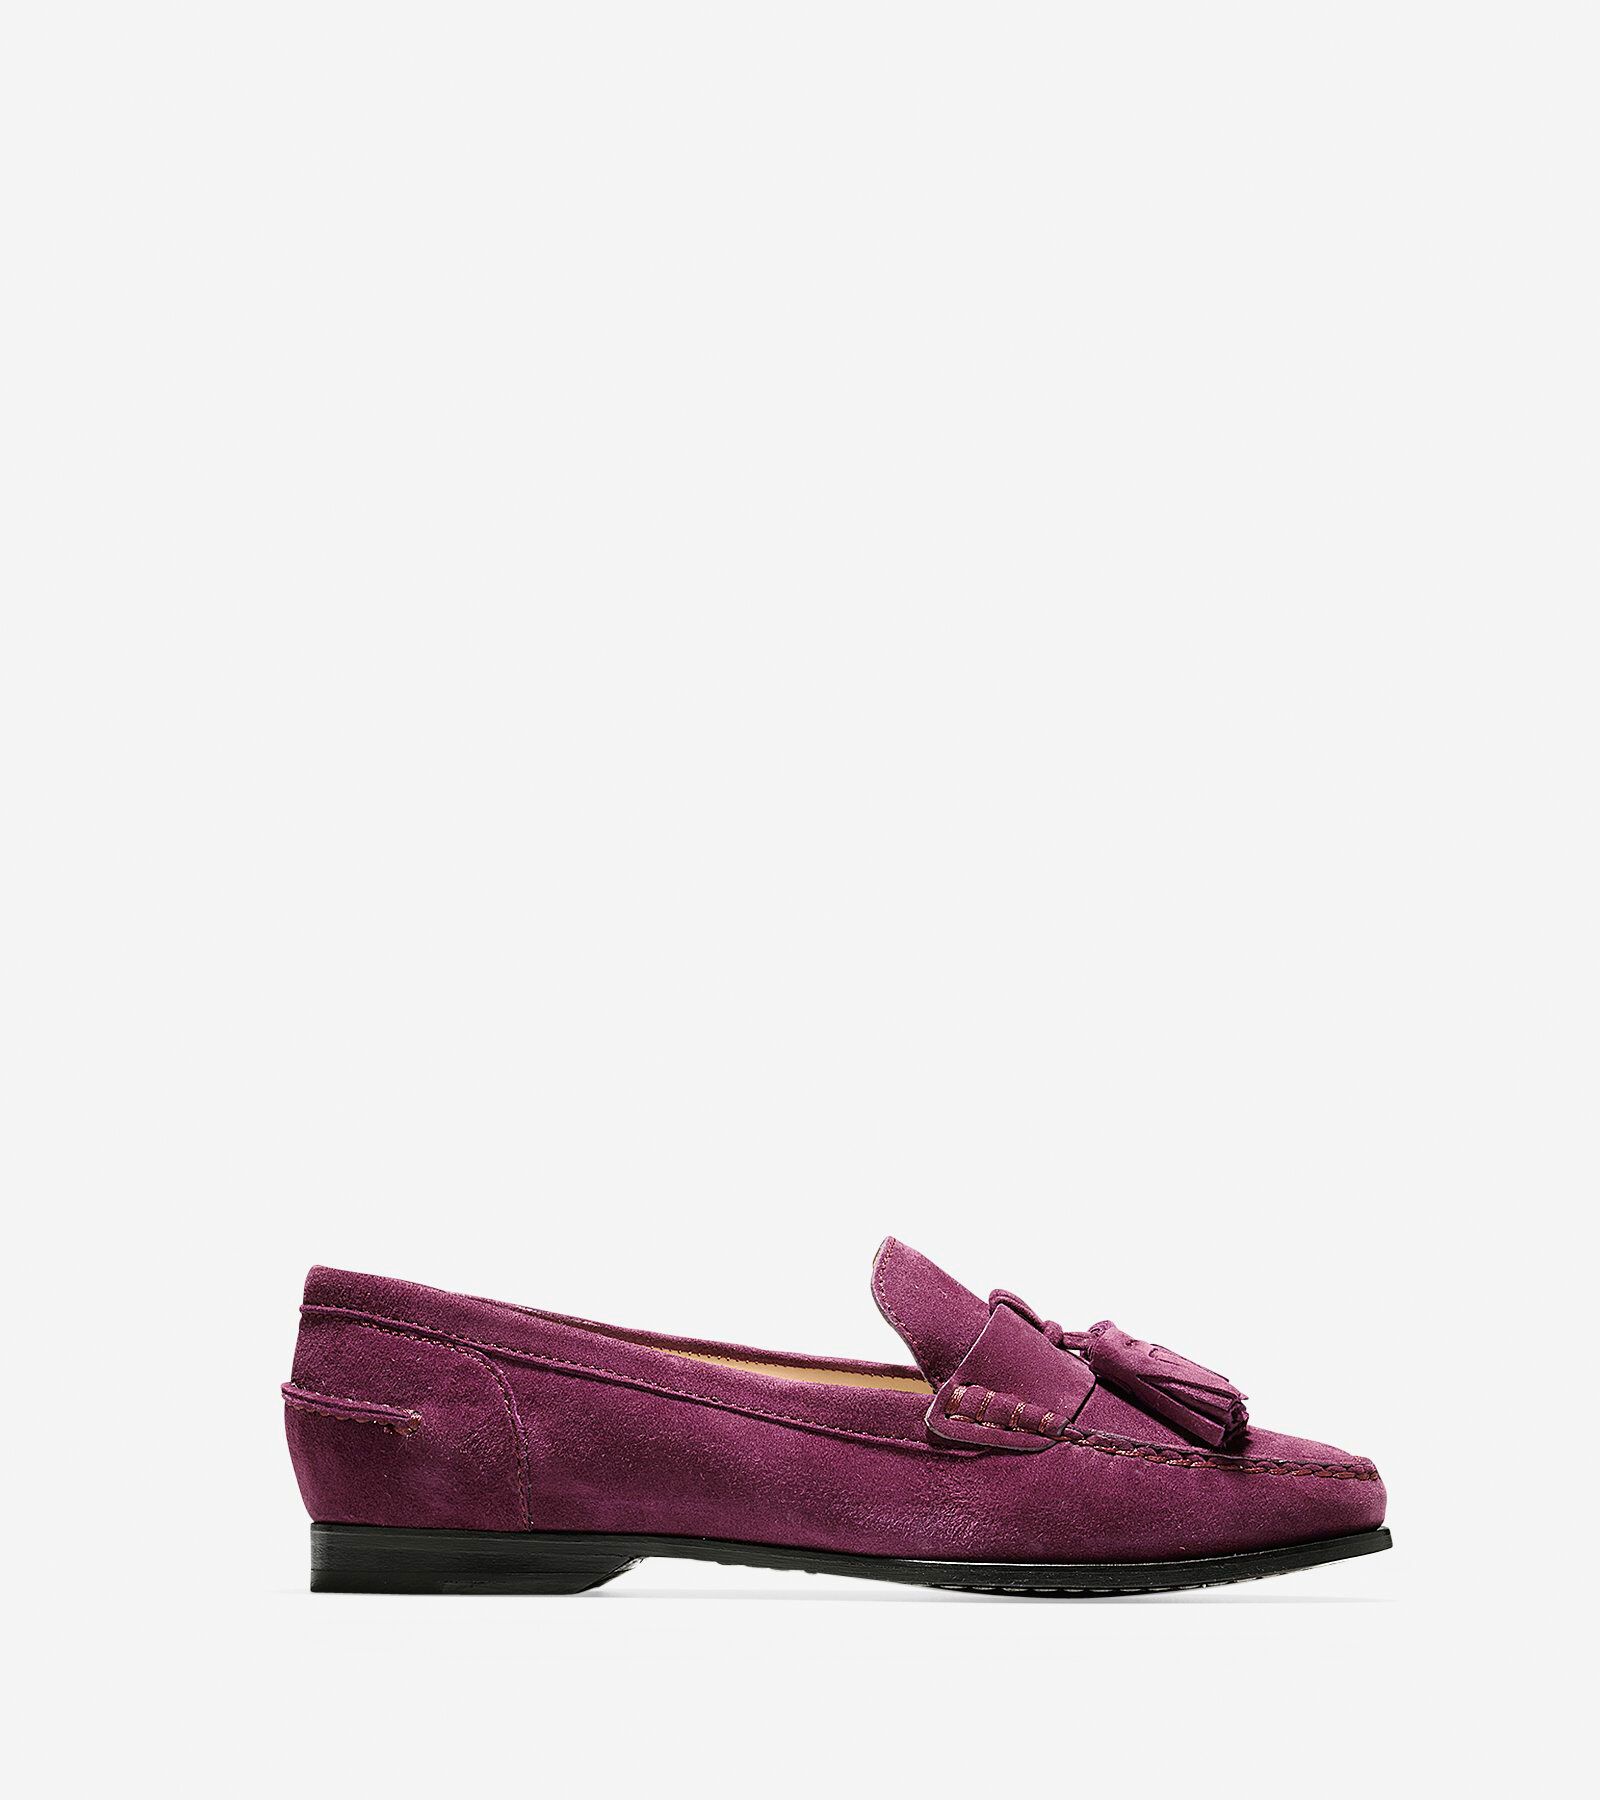 Cole Haan Emmons Tassel Loafer (Women's)